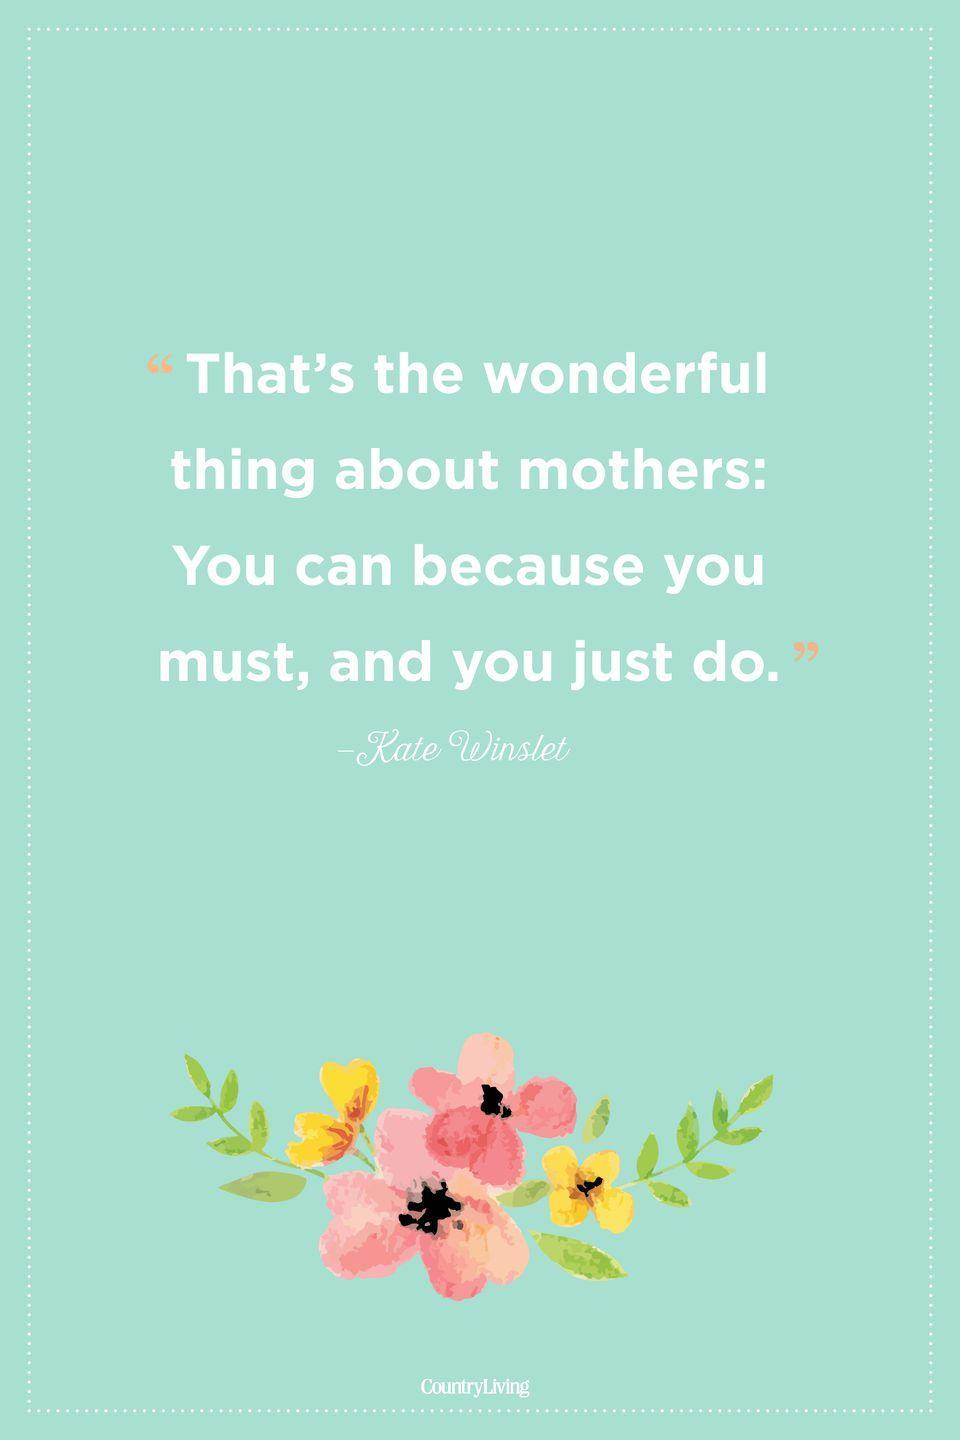 "<p>""That's the wonderful thing about mothers: You can because you must, and you just do.""</p>"